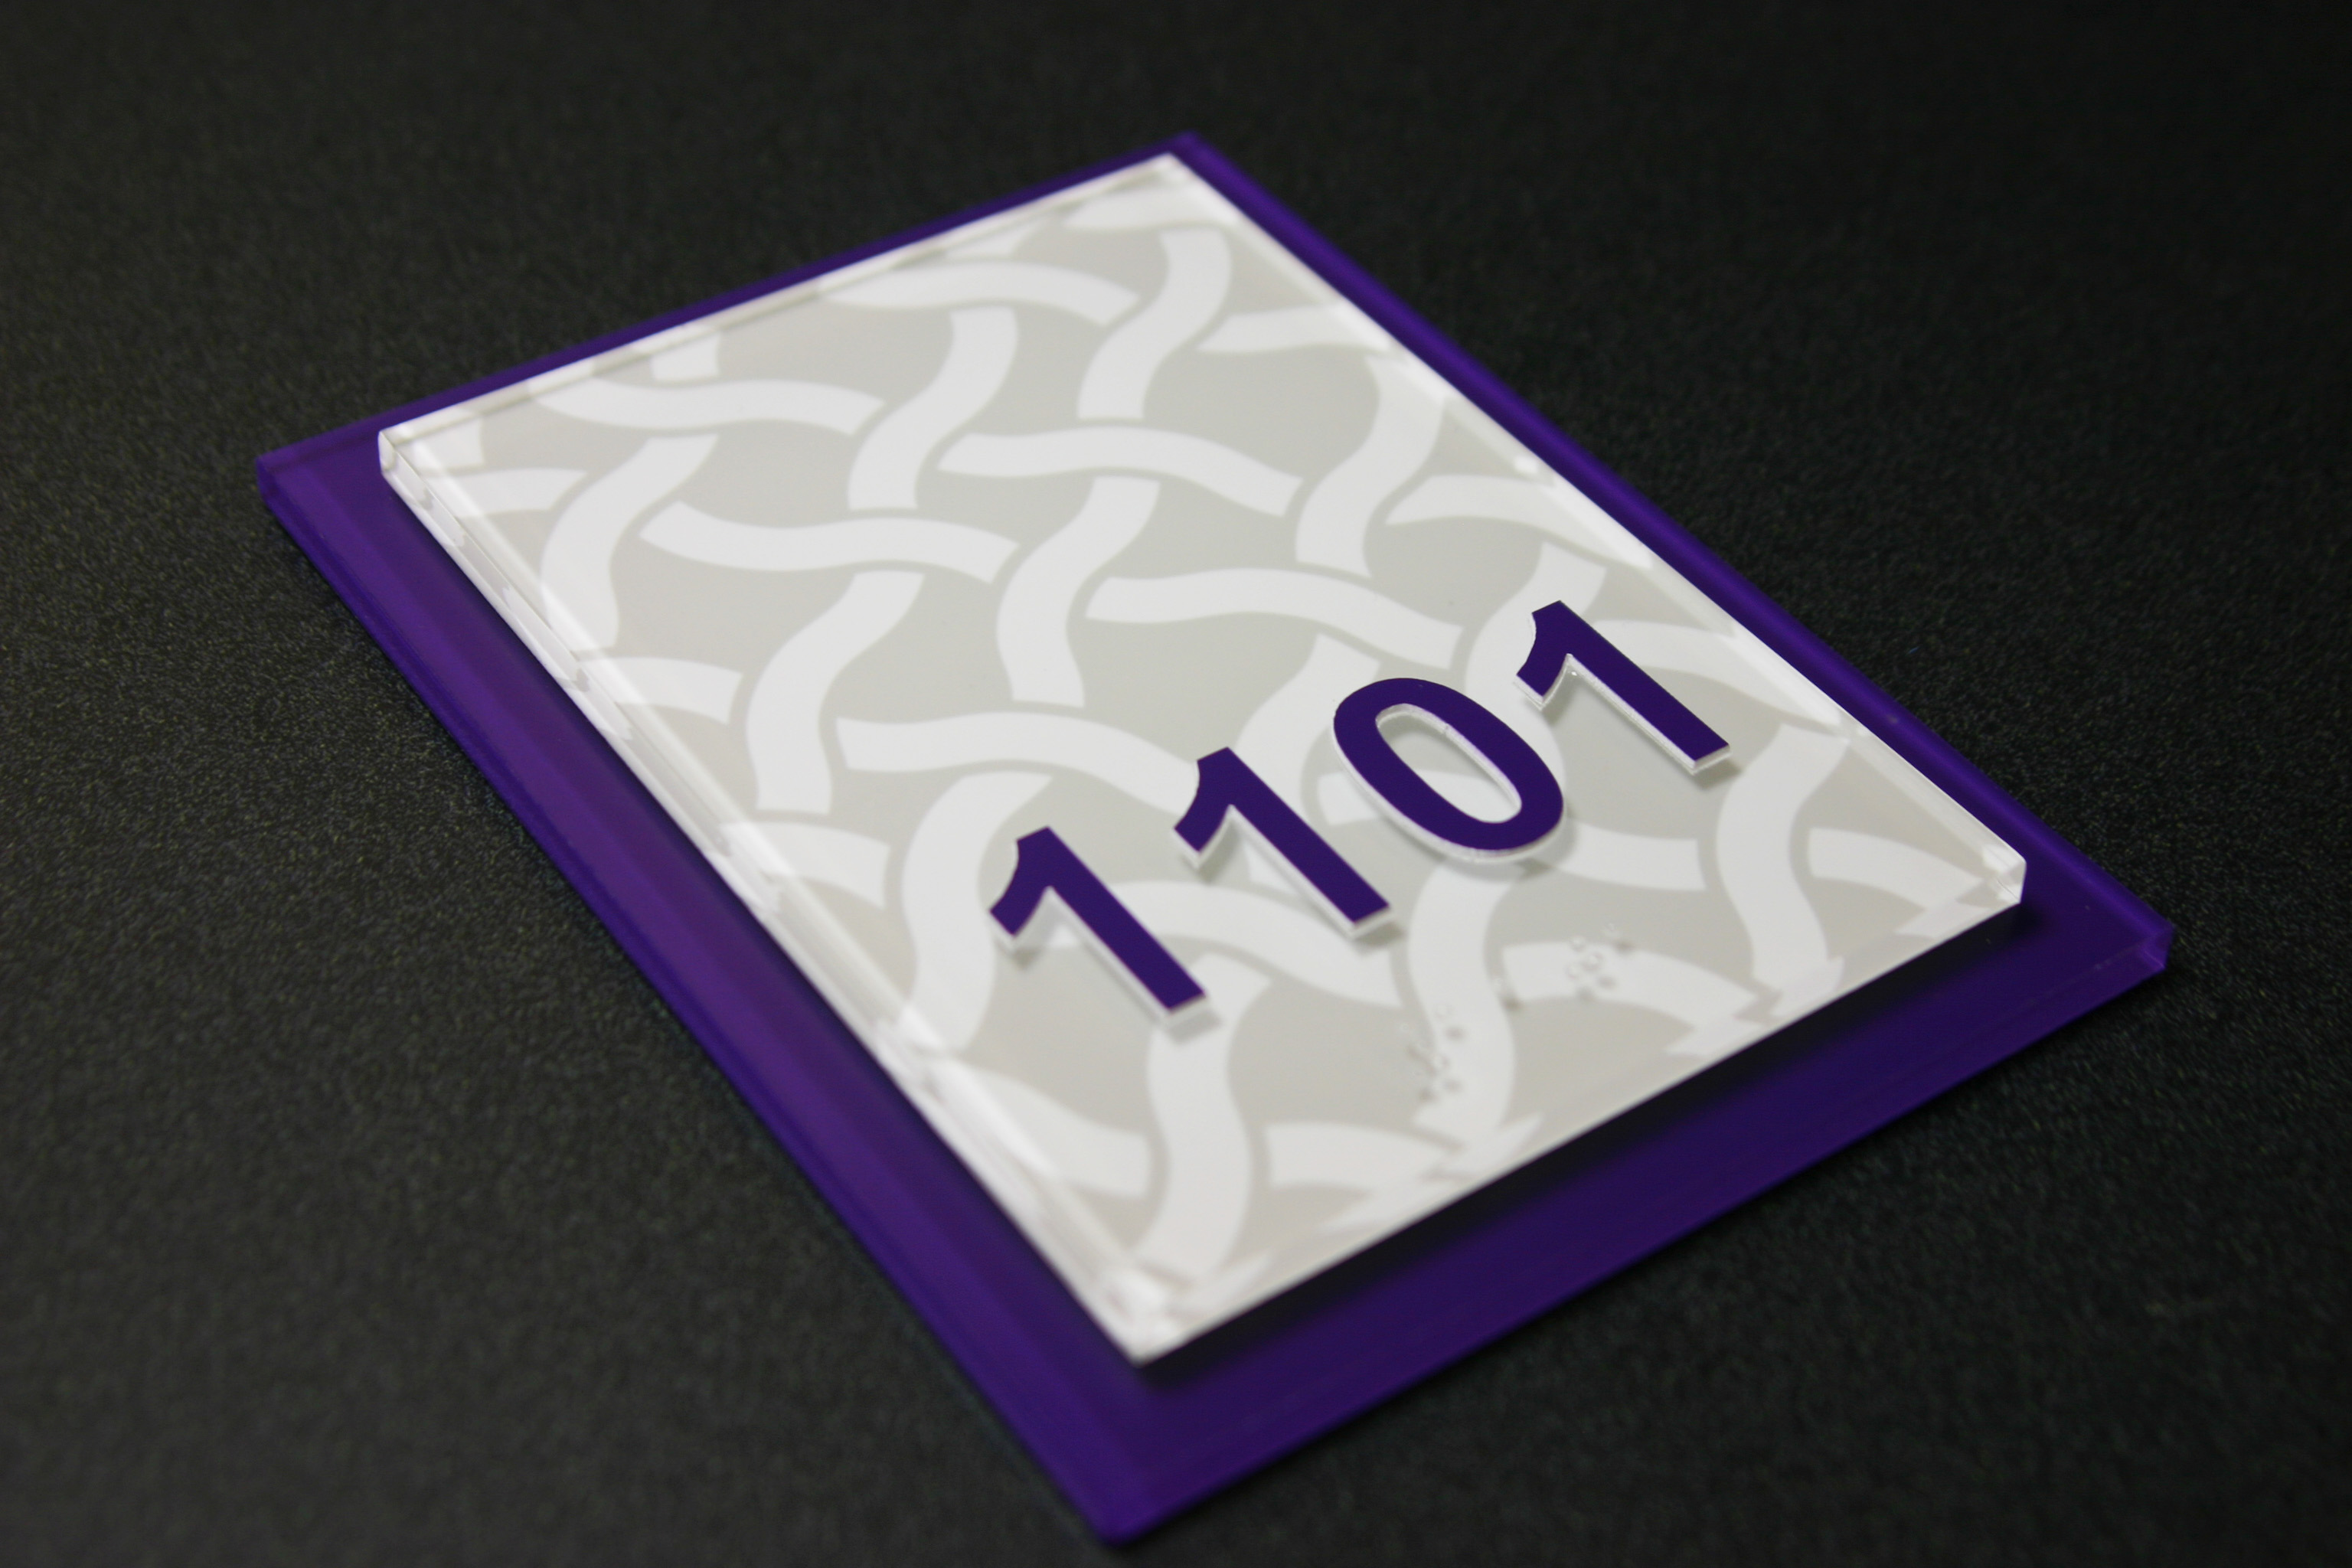 """.25"""" non-glare acrylic faceplate with subsurface digitally printed graphic, .25"""" non-glare acrylic backplate with subsurface paint. Surface applied raised text and friction fit clear raster braille."""